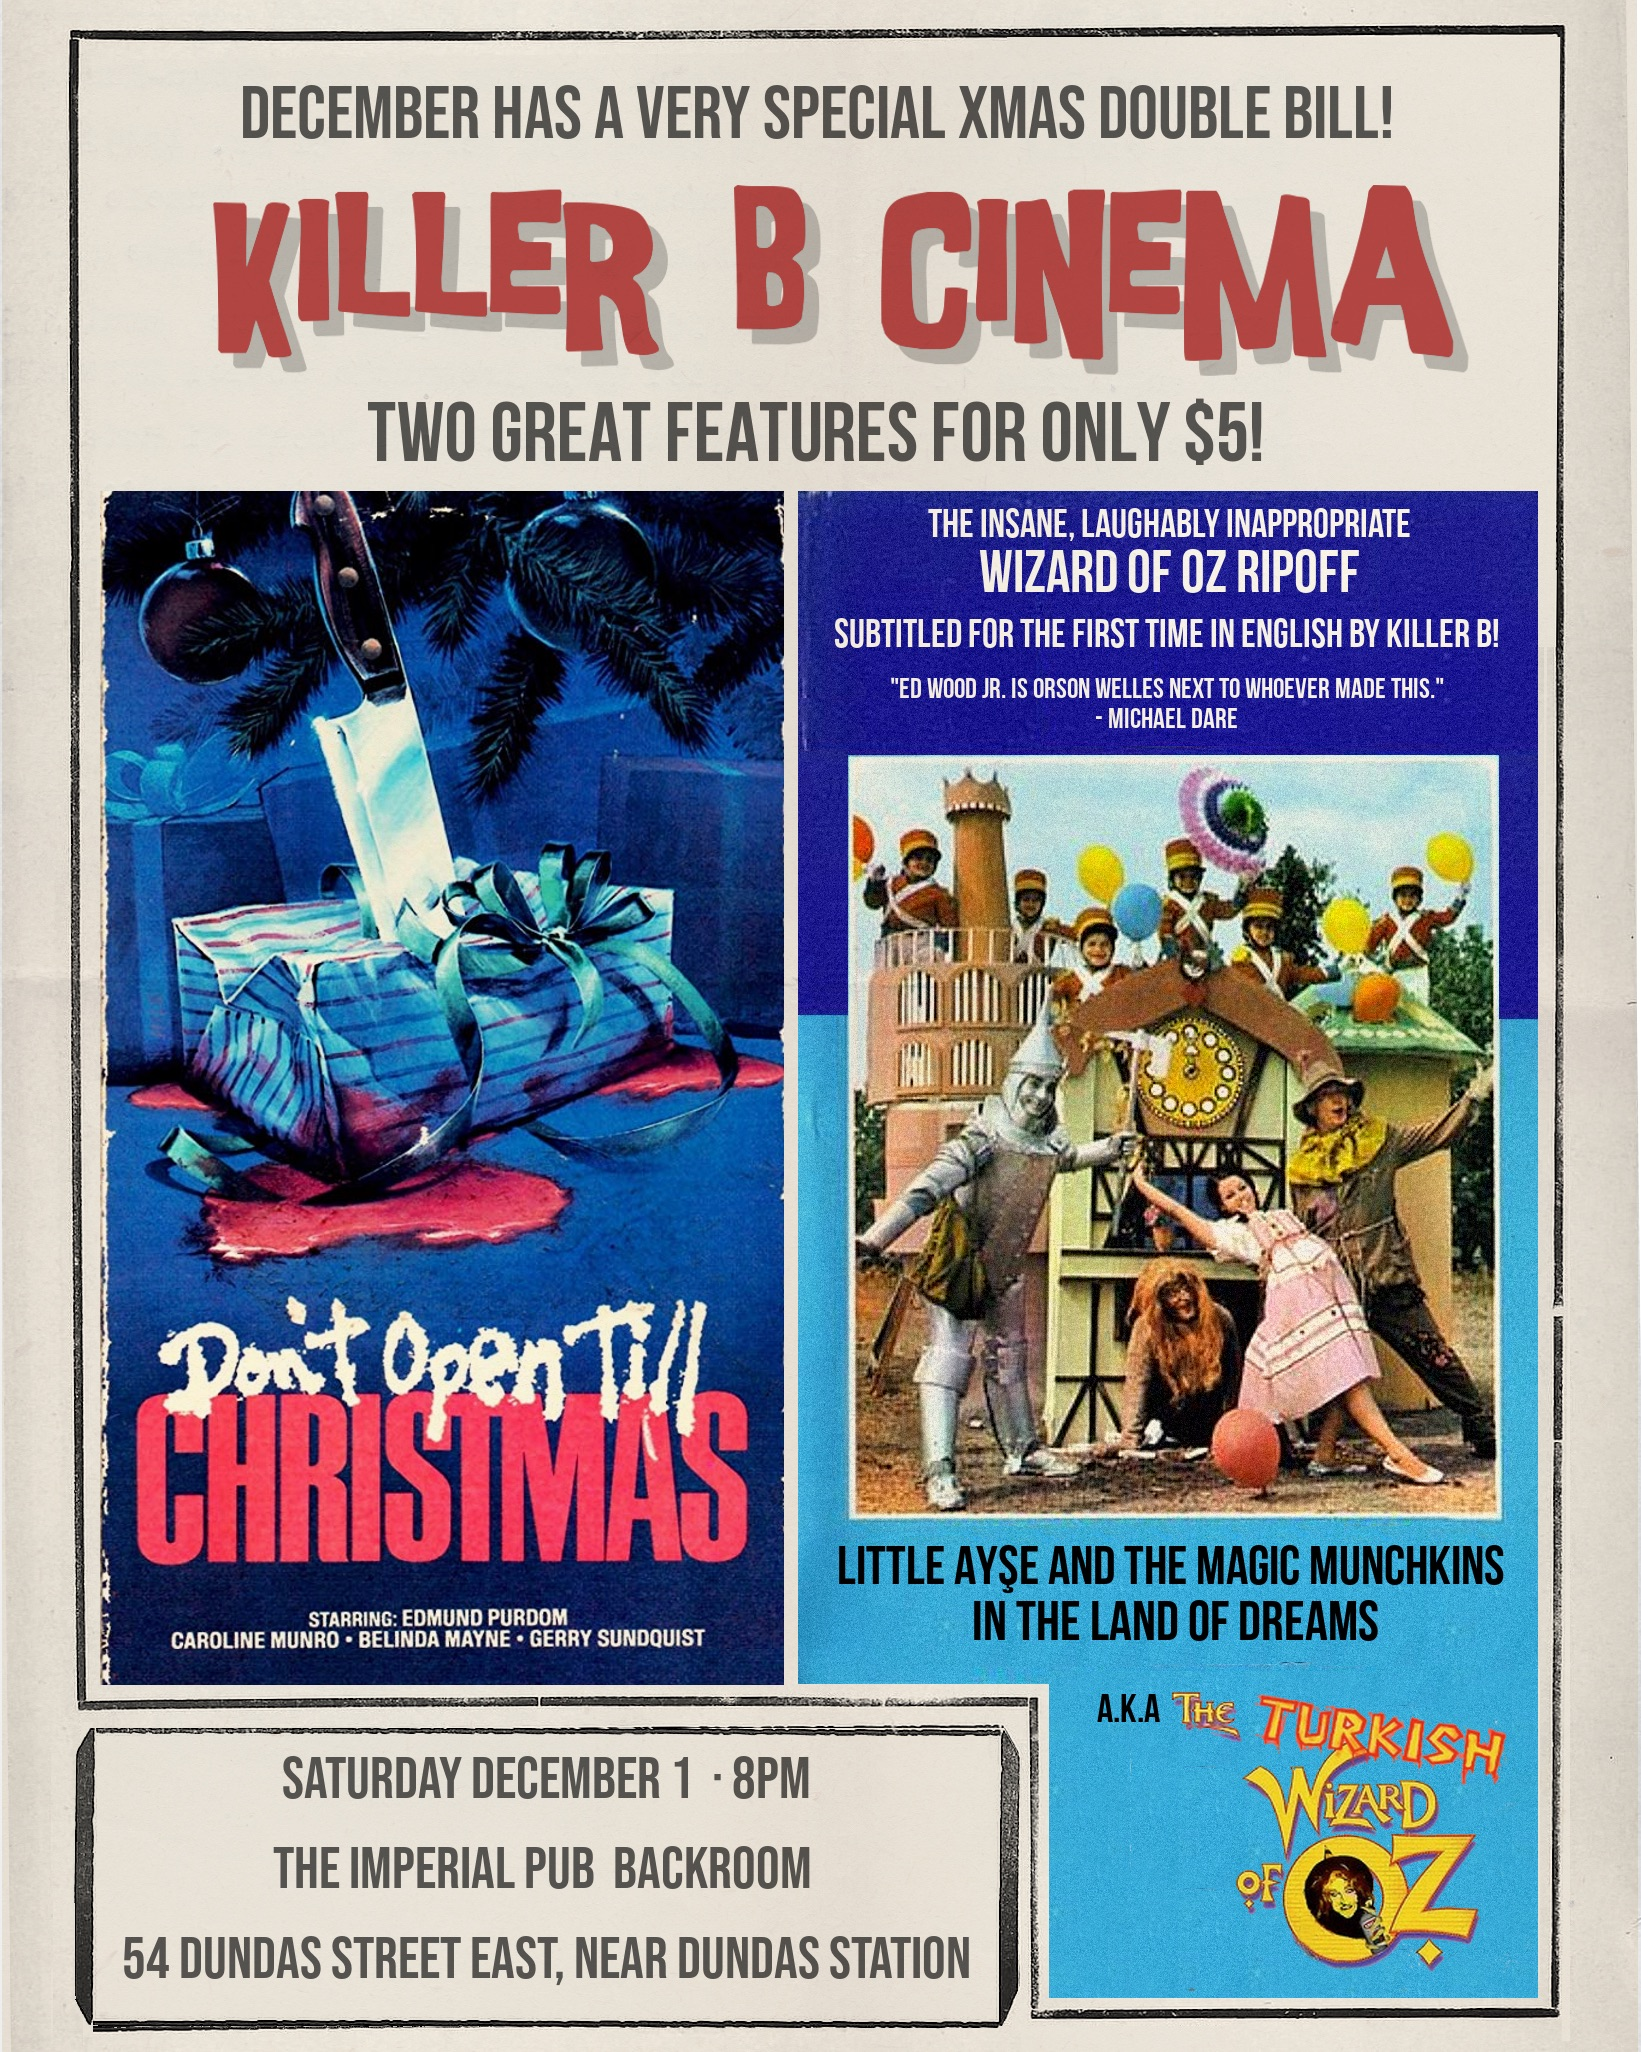 killer-b-cinema-postcard__DEC-2018-poster.jpg